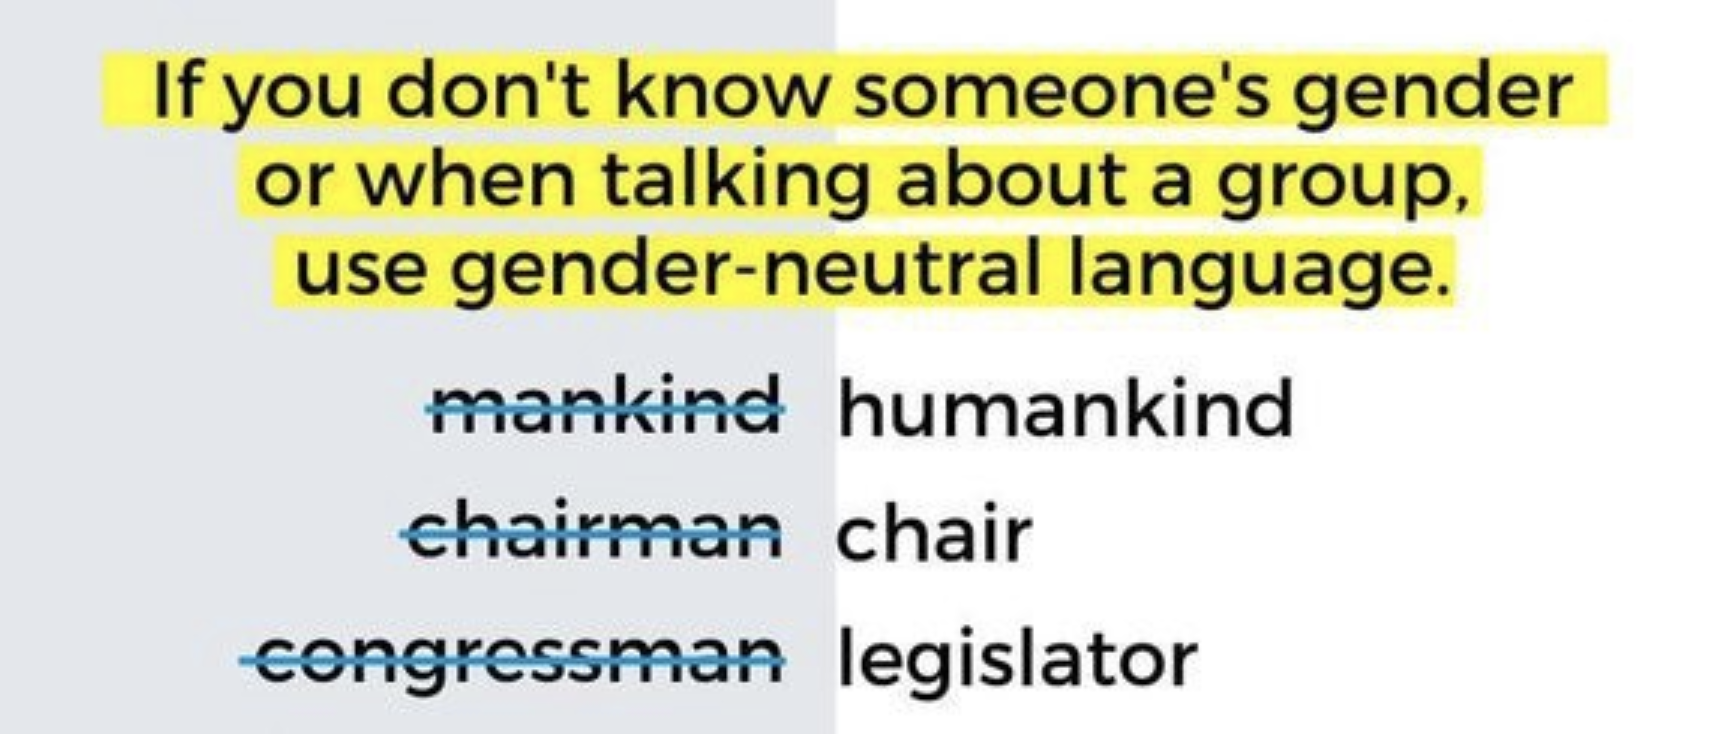 If you don't know someone's gender or when talking about a group use gender-neutral language.